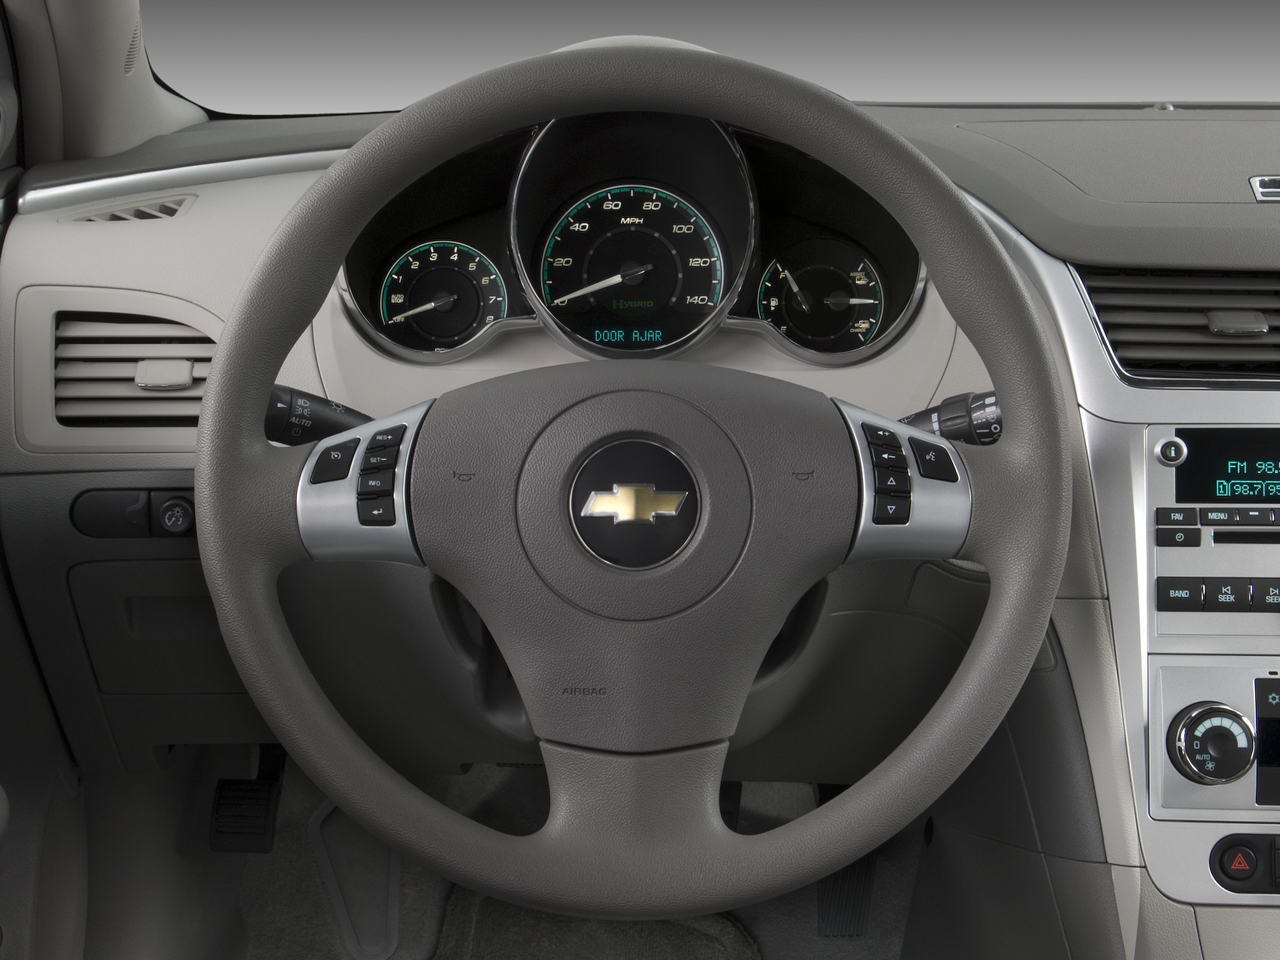 2008 chevrolet malibu hybrid sedan steering wheel 2008 chevrolet malibu latest news, features, and reviews